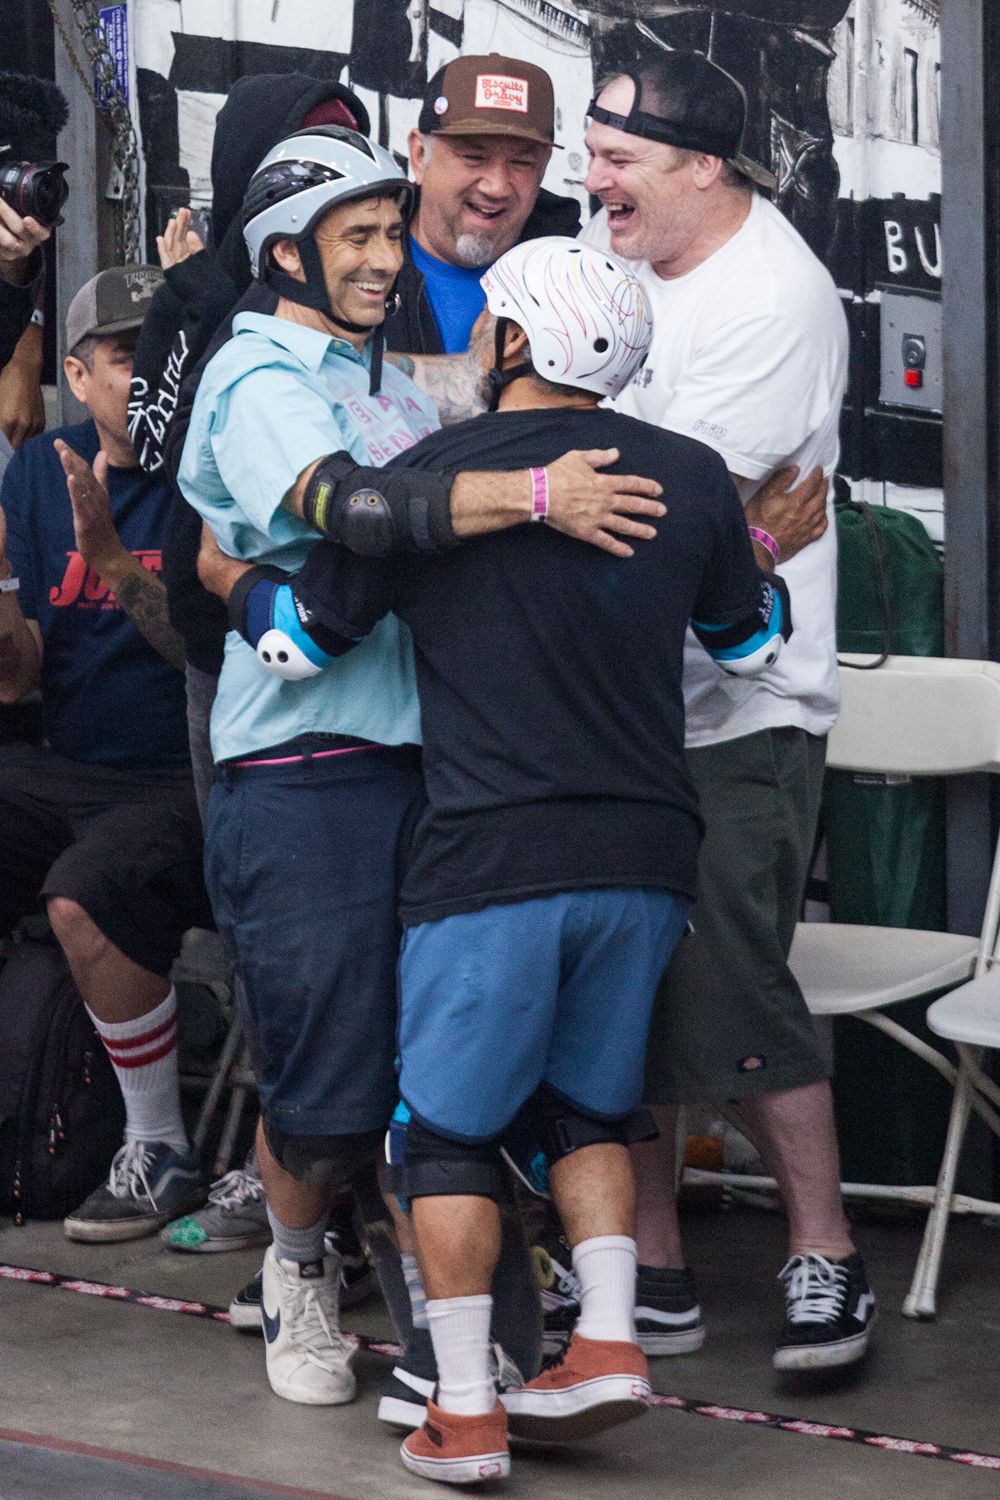 Steve Caballero and Jeff Grosso congratulate Lance Mountain after his winning run  - Vans Pool Party